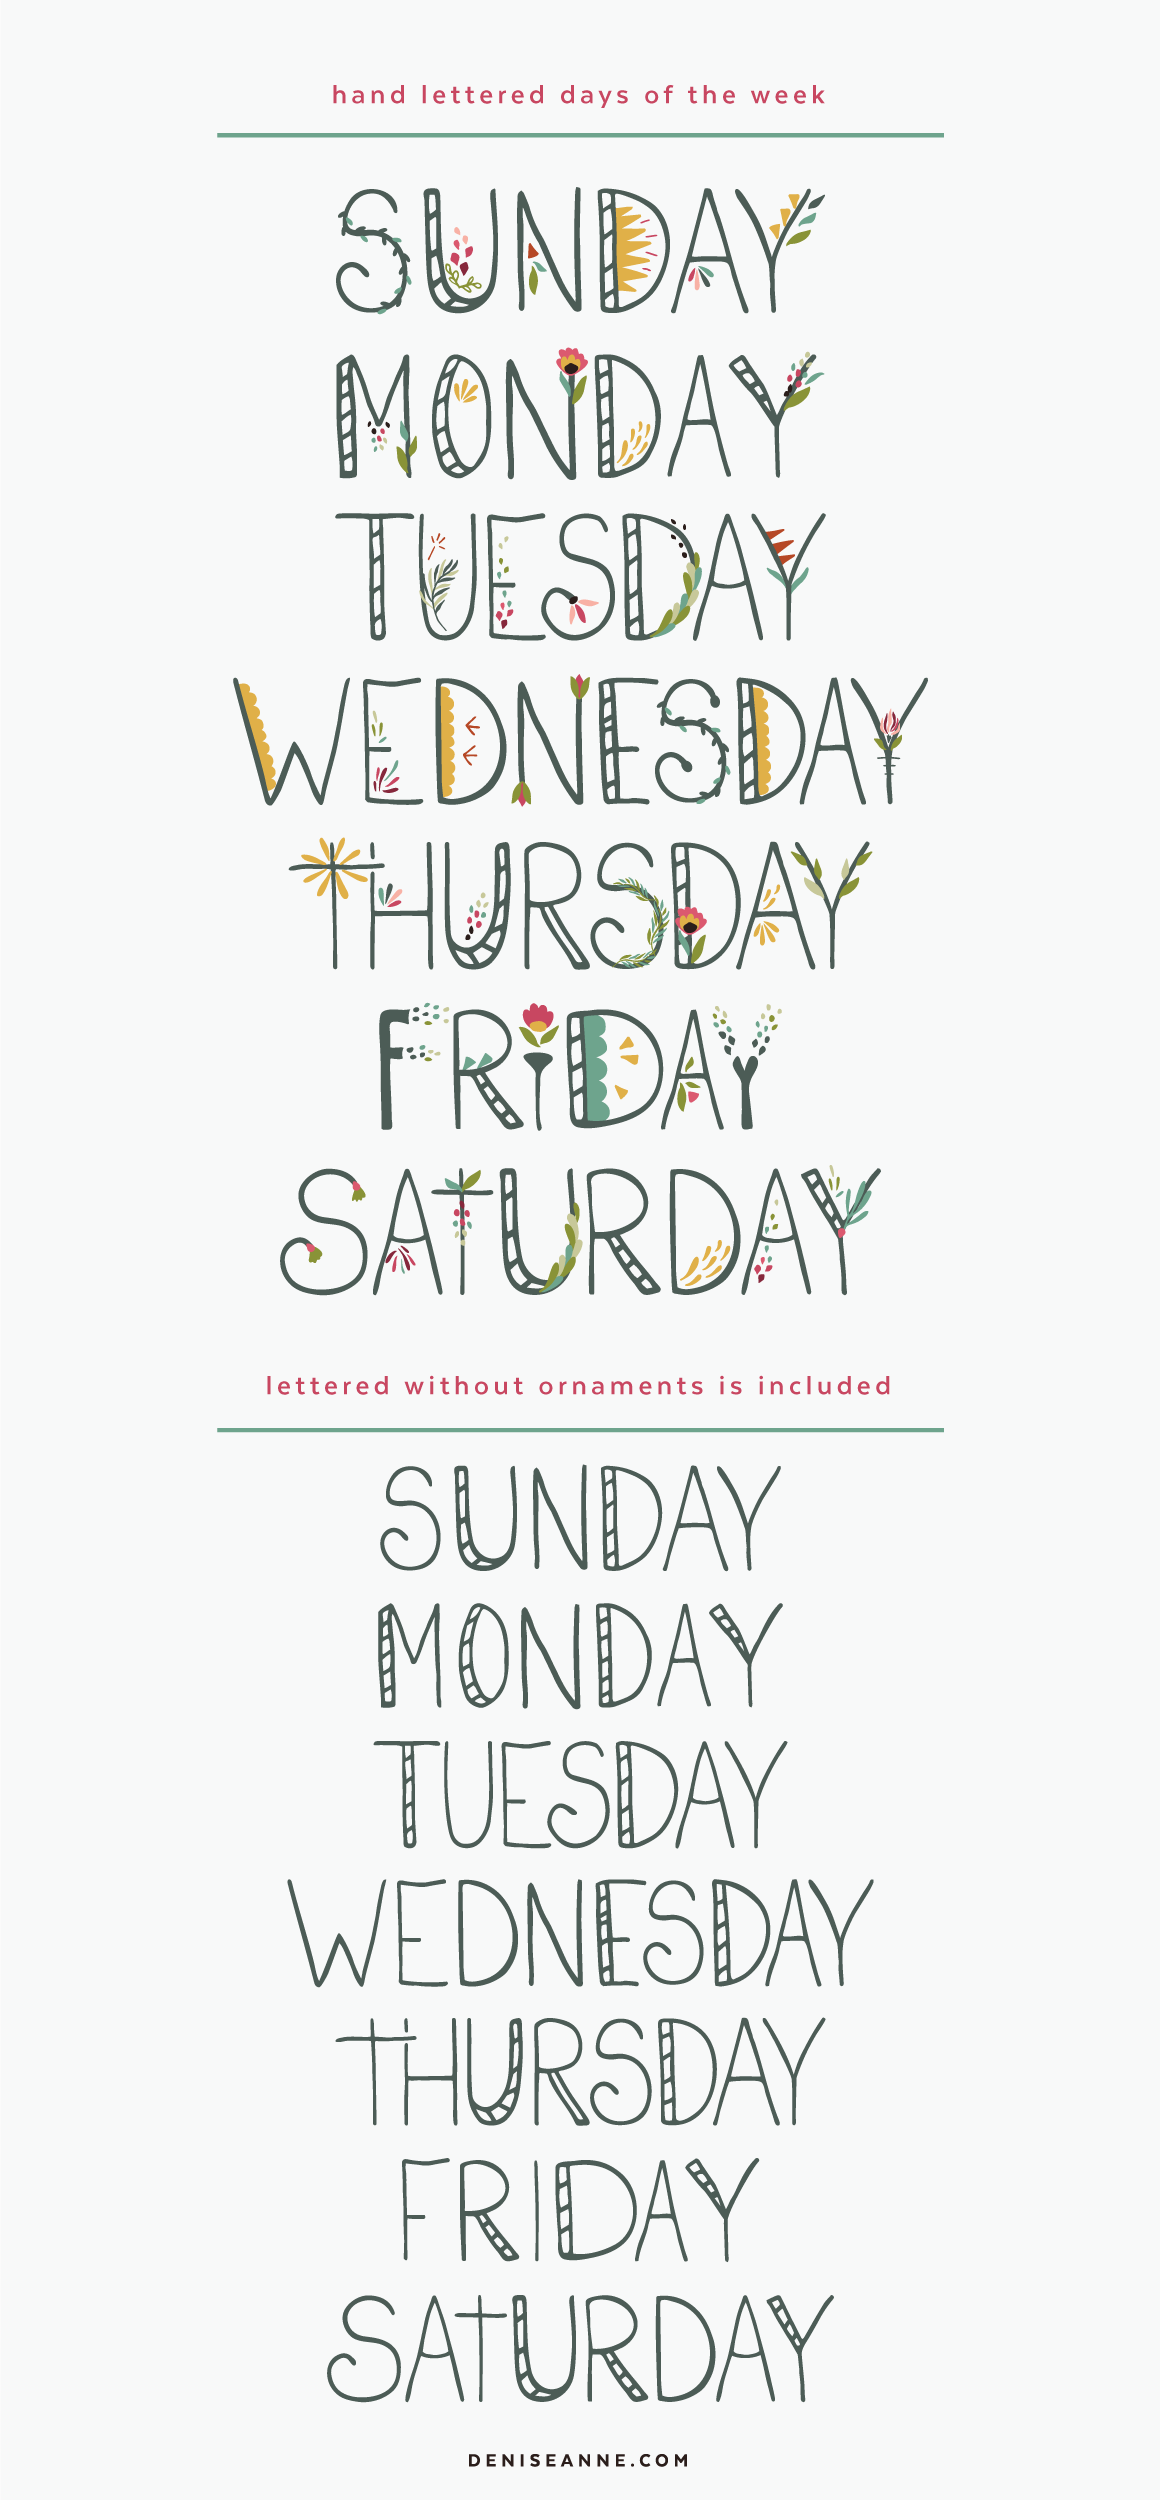 hand-lettered-days-of-the-week